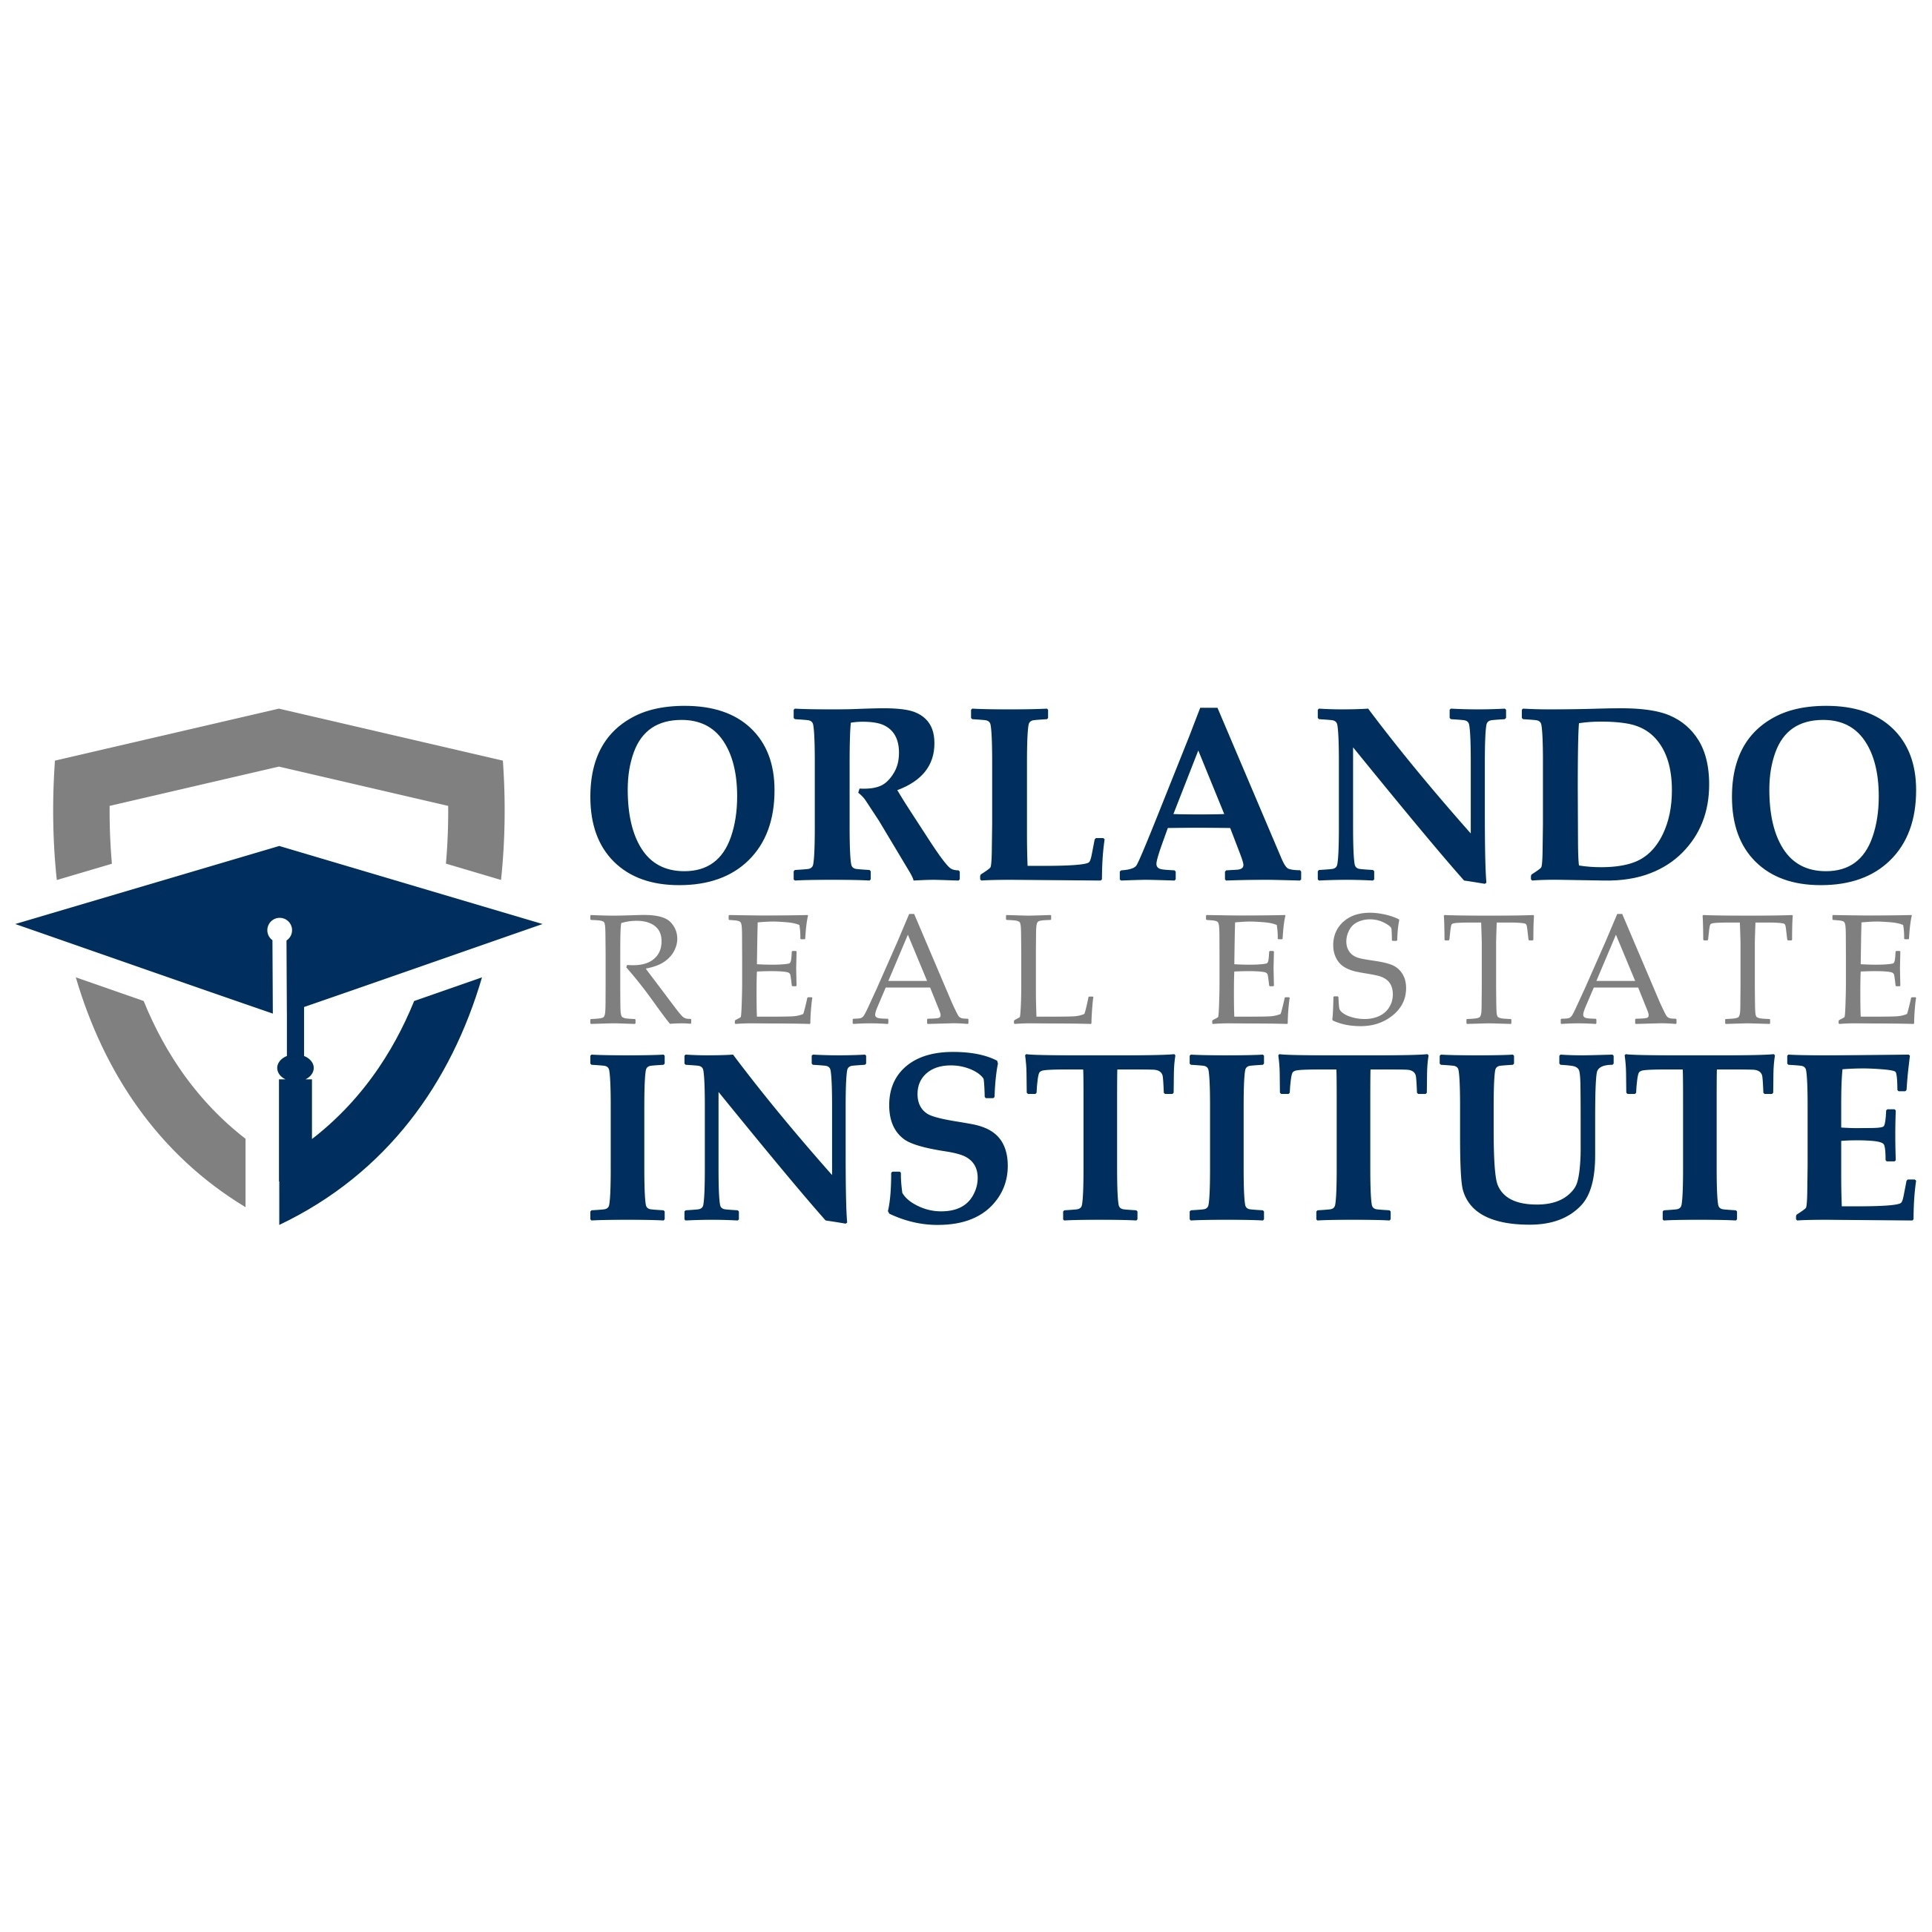 Orlando Real Estate Institute - Orlando, FL 32804 - (321)333-5222 | ShowMeLocal.com